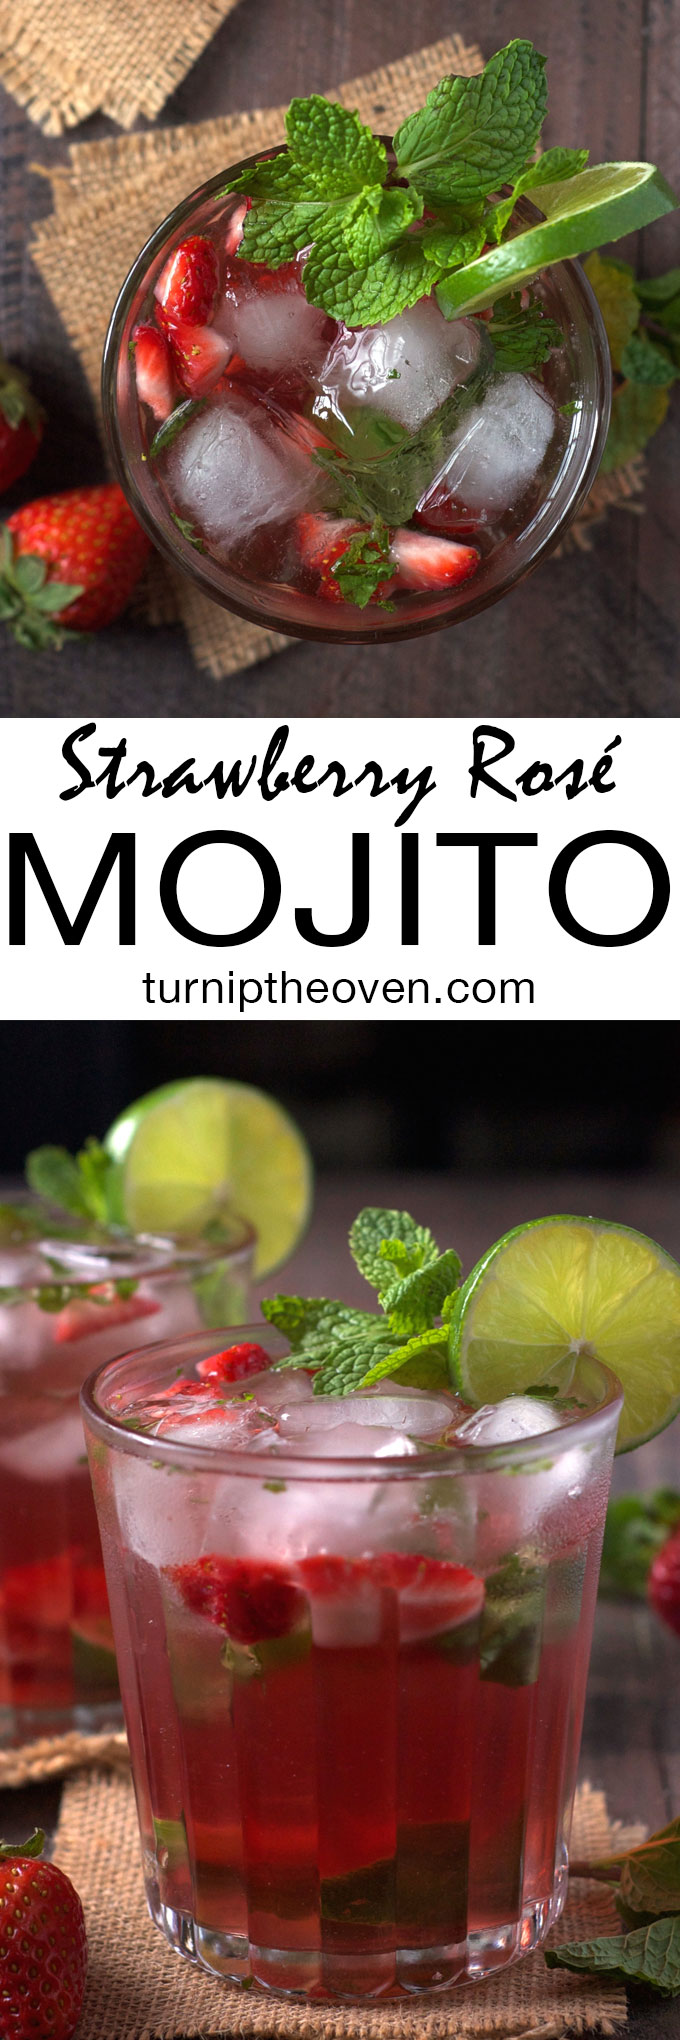 This fizzy, fruity mojito is made with muddled strawberries and rosé wine. With only six simple ingredients, it's the perfect warm weather cocktail!